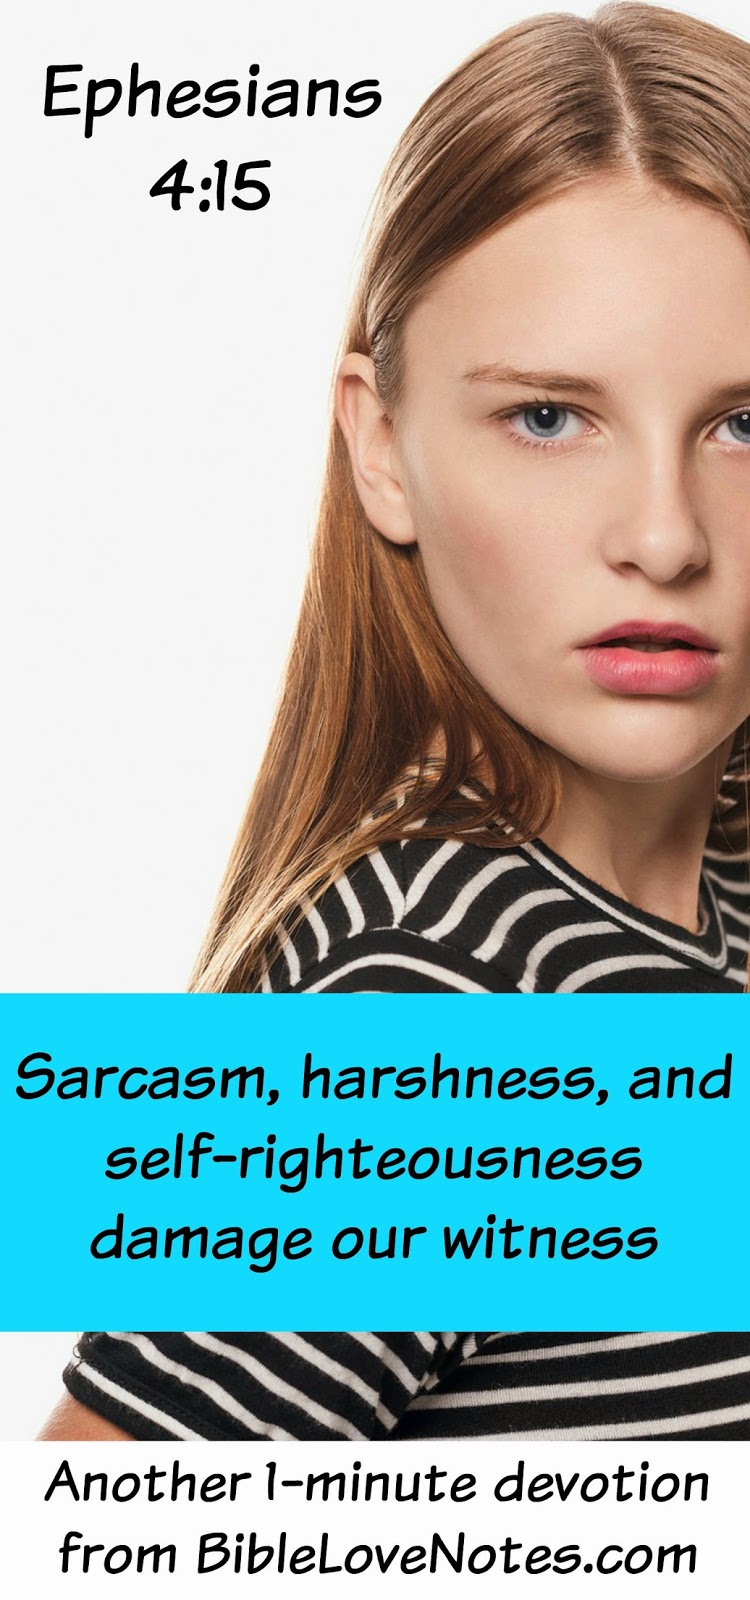 sarcasm and harsh words, Christian speech, kindness, self-righteousness